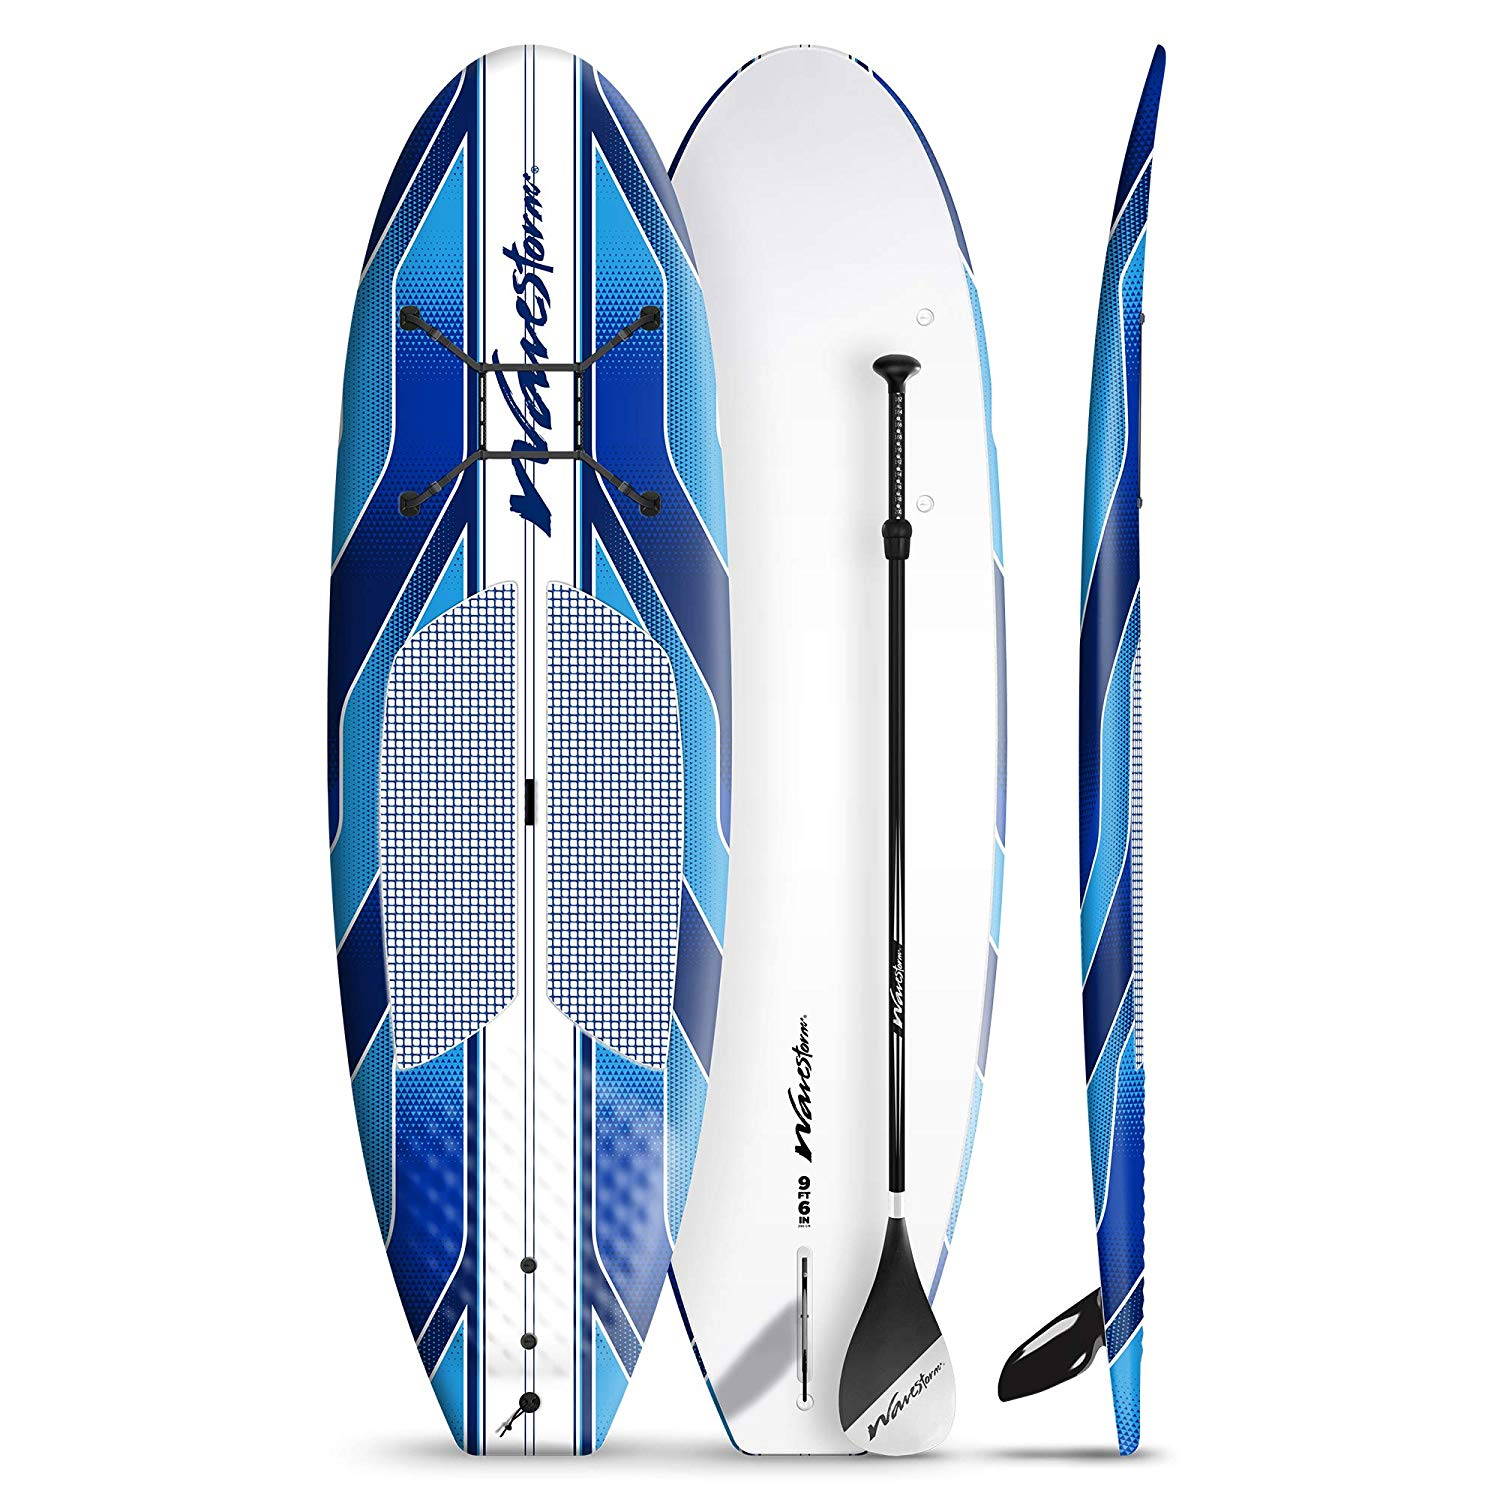 "Wavestorm 9' 6"" Expedition SUP Stand Up Paddle Board Bundle 2-Pack"